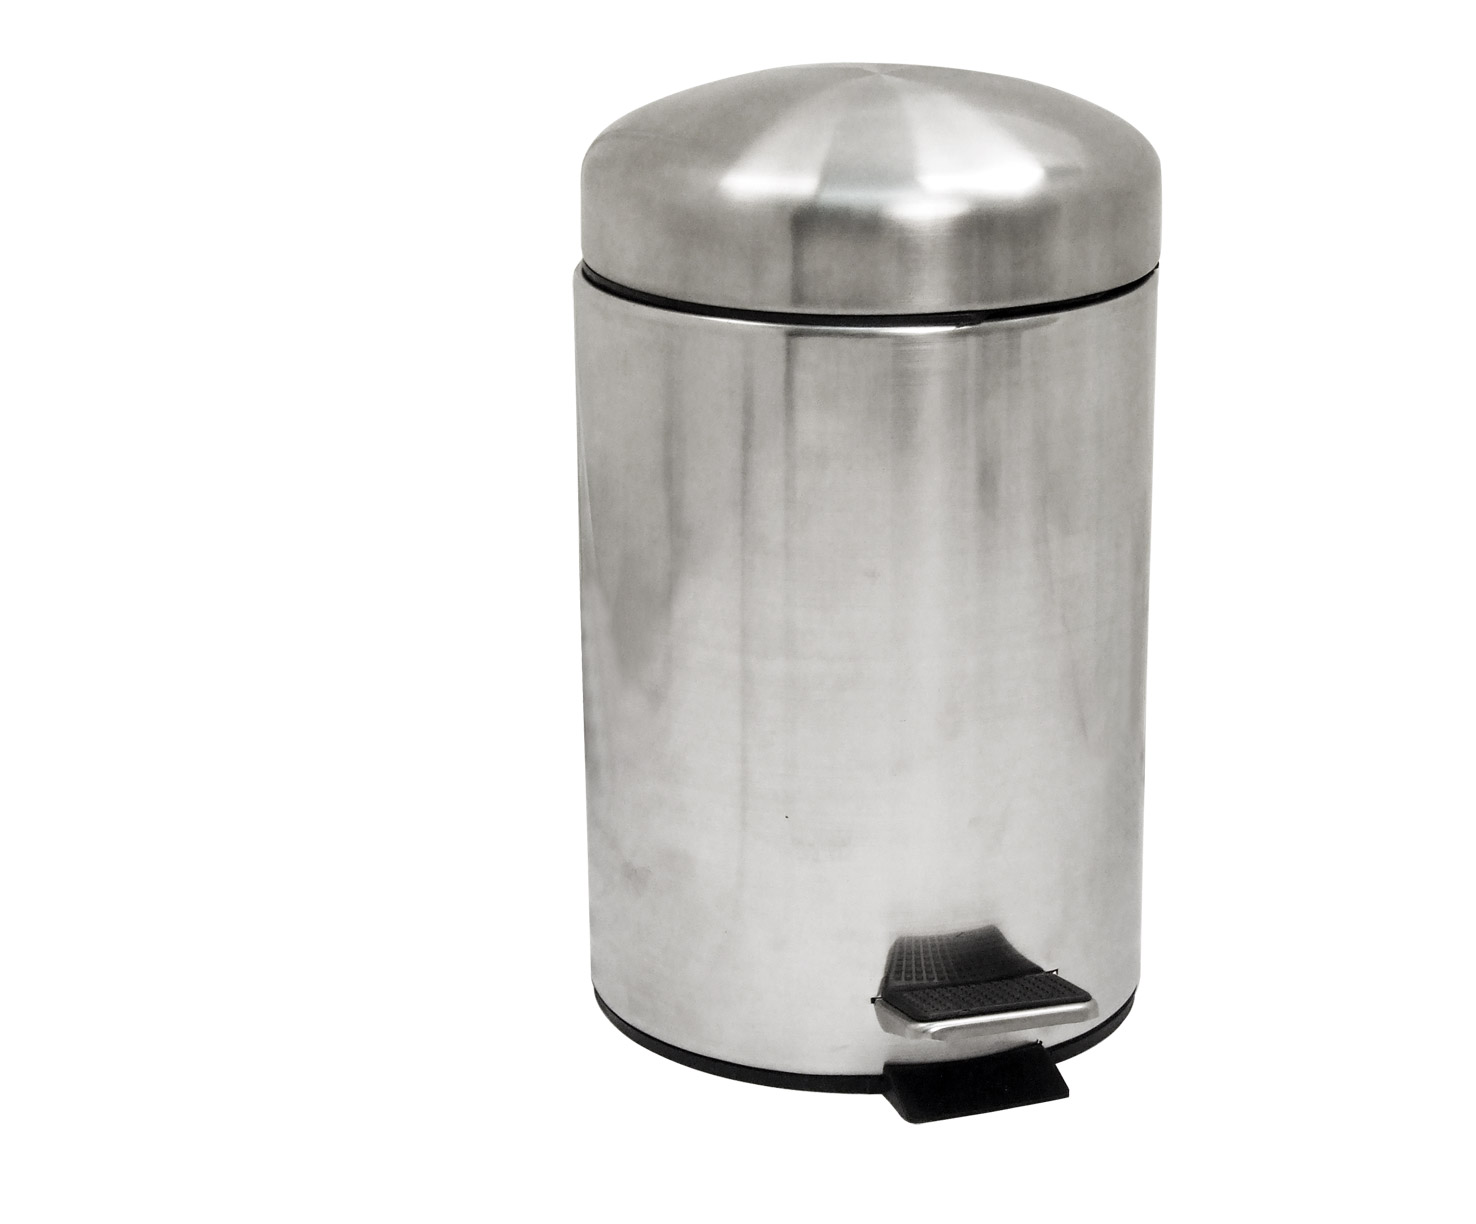 Stainless Steel 3L Round Pedal Bin W